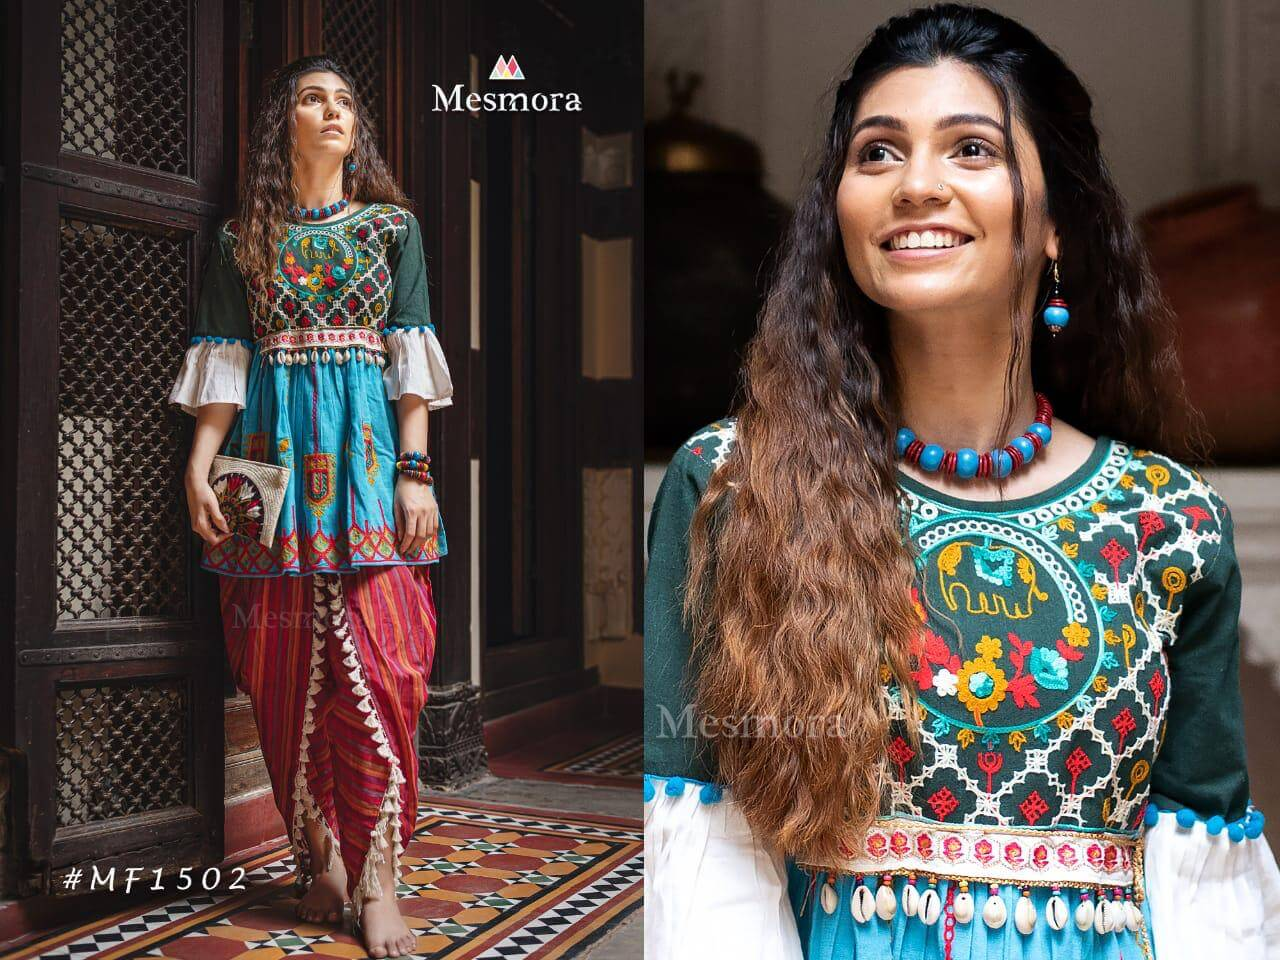 Mesmora Kath Putli Female Kedia Collection Vol 2 collection 7